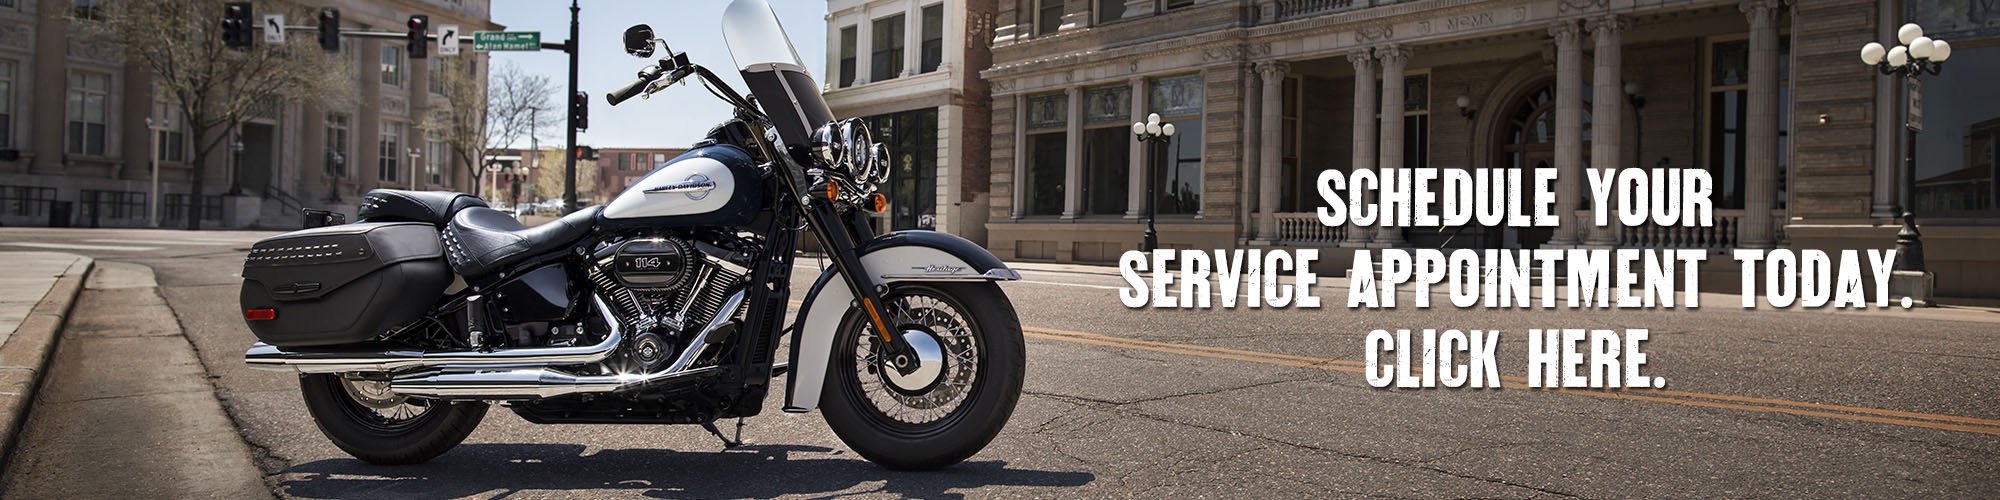 Schedule Your Service Appointment at Thunder Harley-Davidson